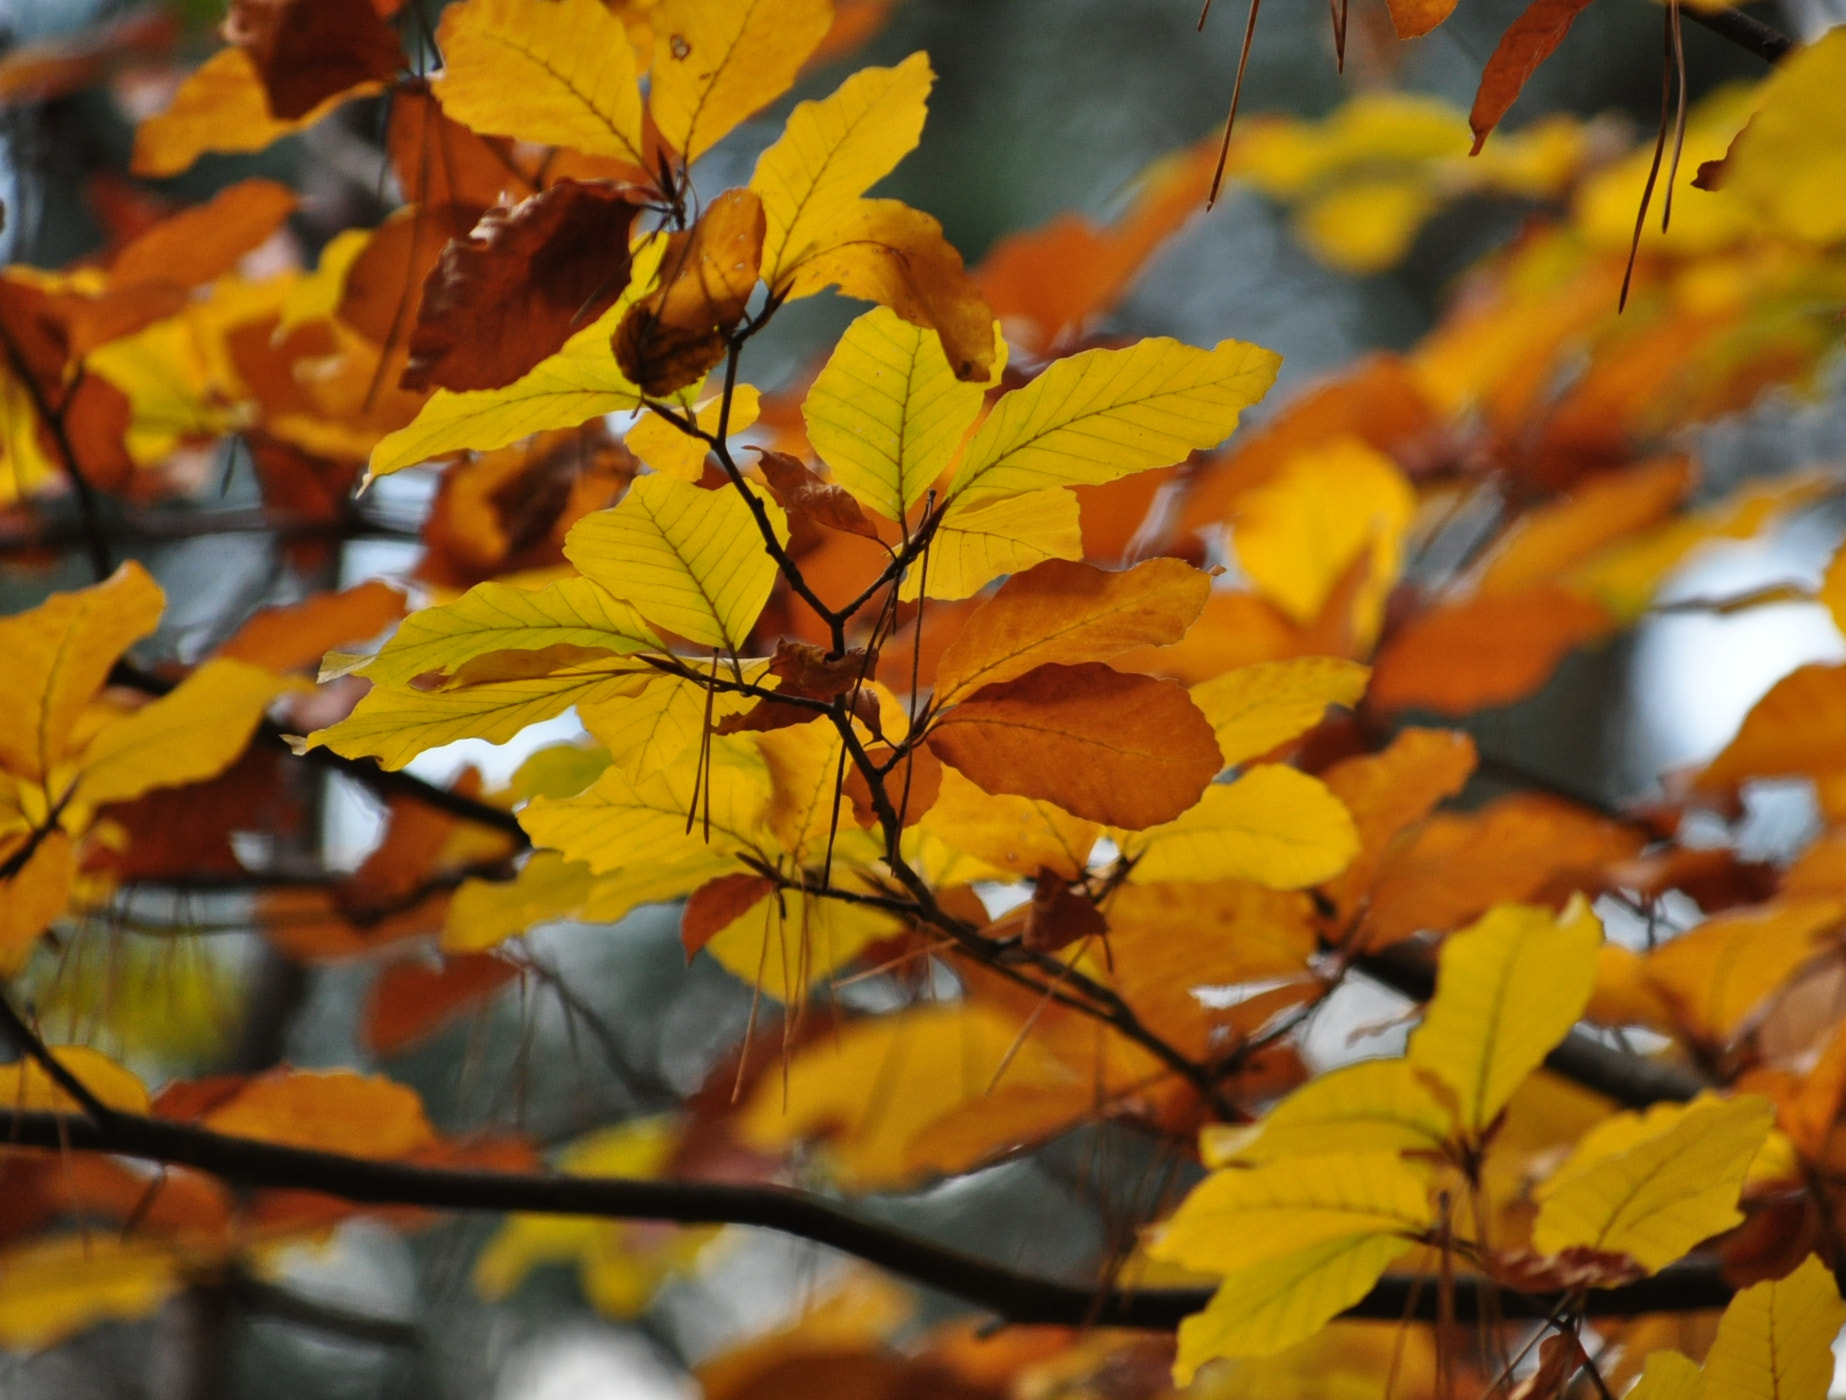 Photograph Leaves in color by Olivia Dodon on 500px